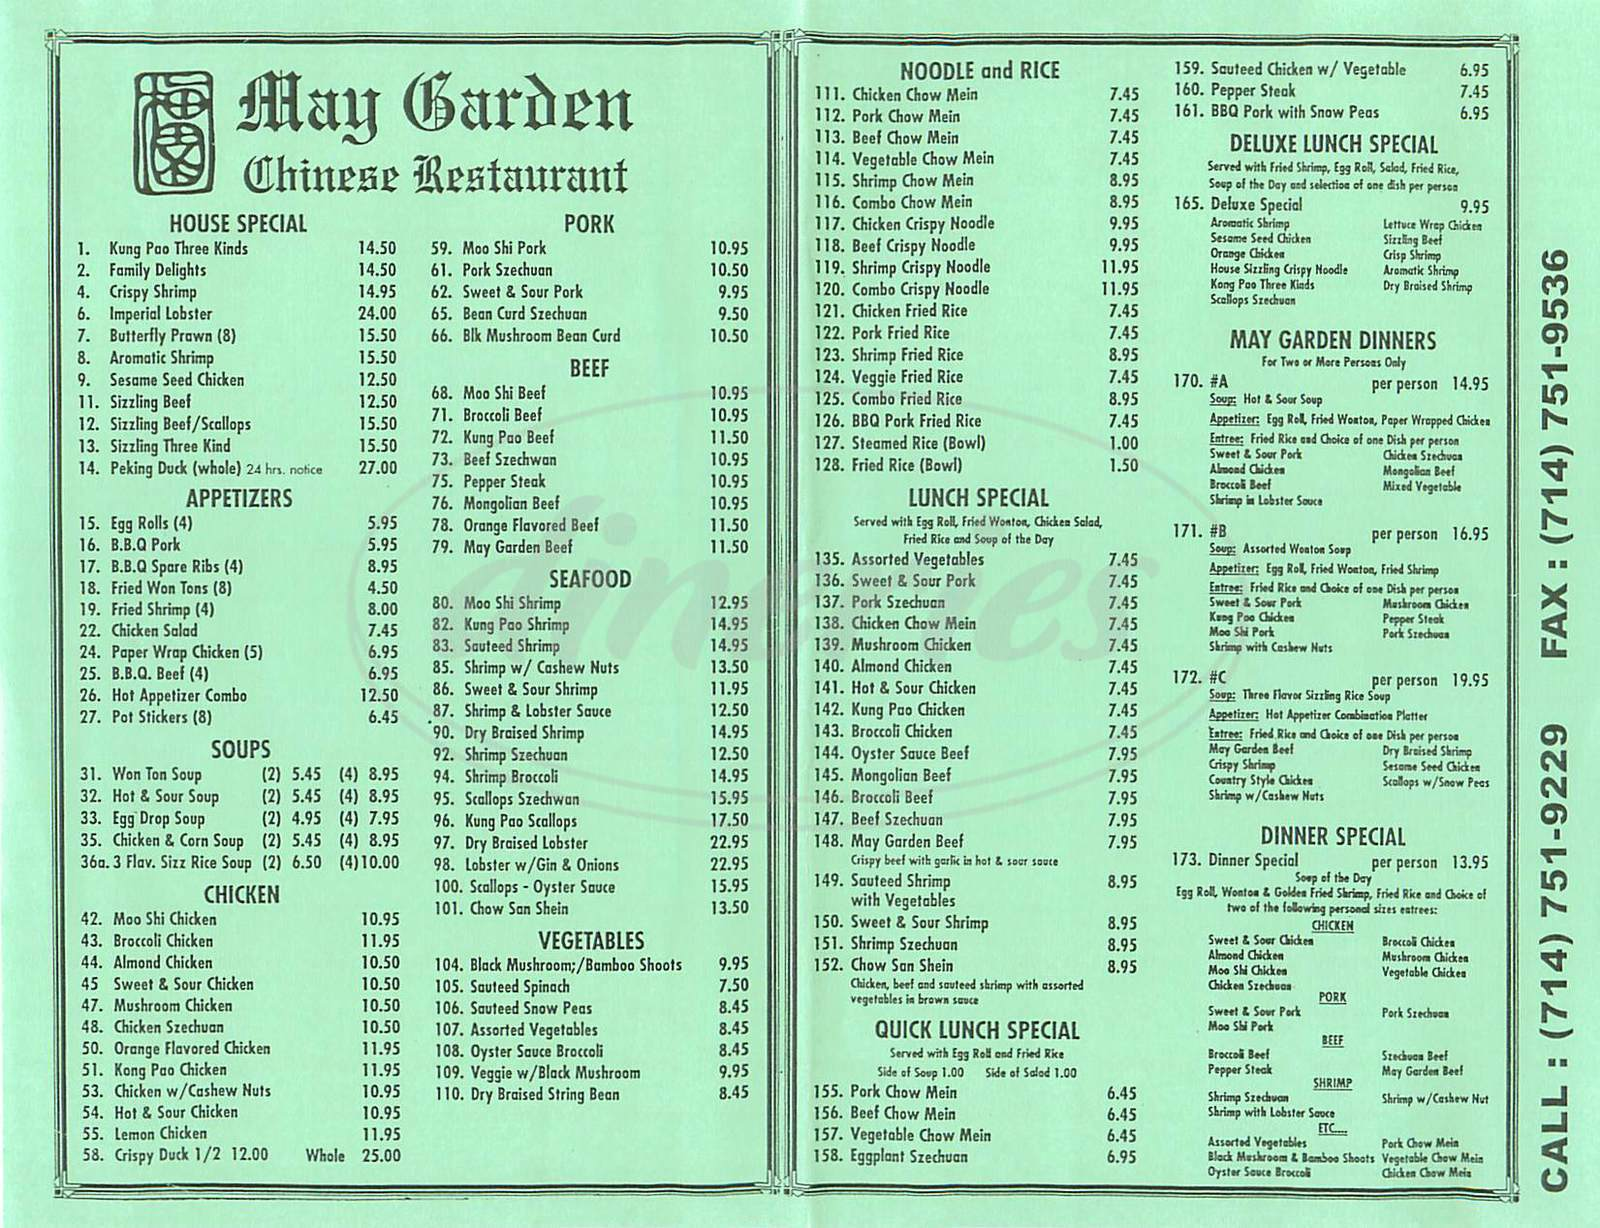 menu for May Garden